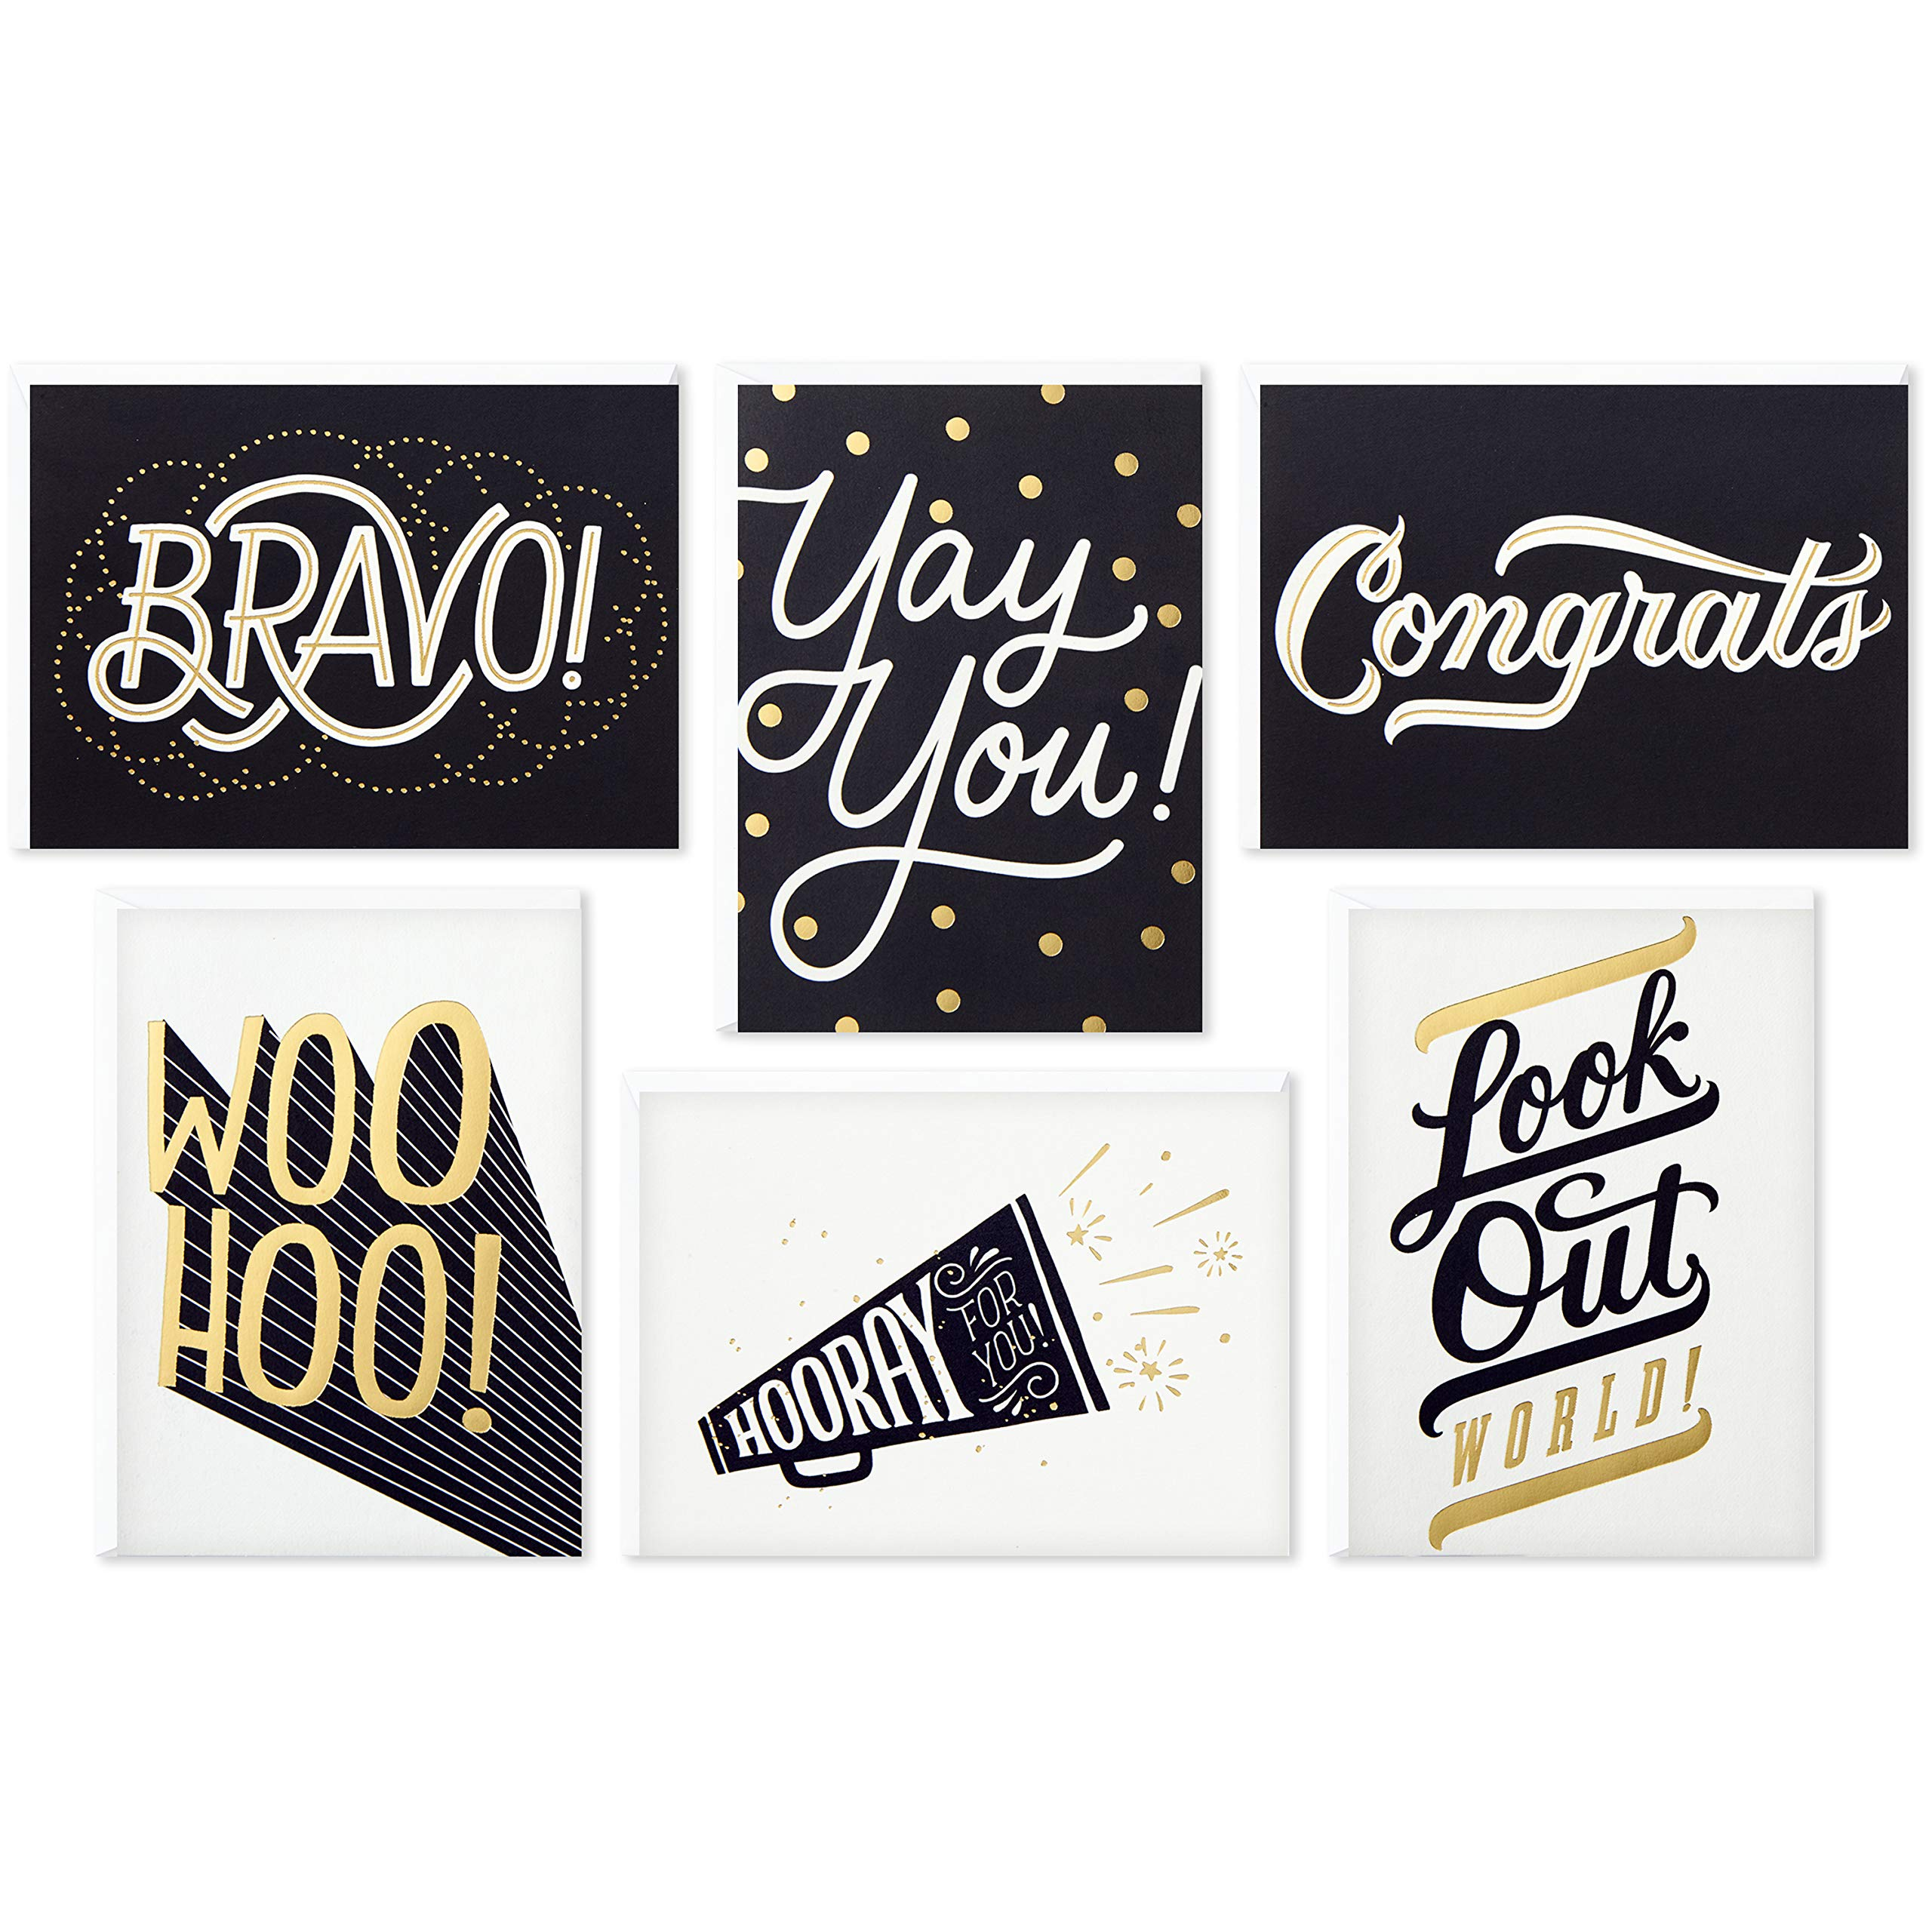 Hallmark Congratulations Cards Assortment (Boxed Set of 24 Cards with Envelopes)